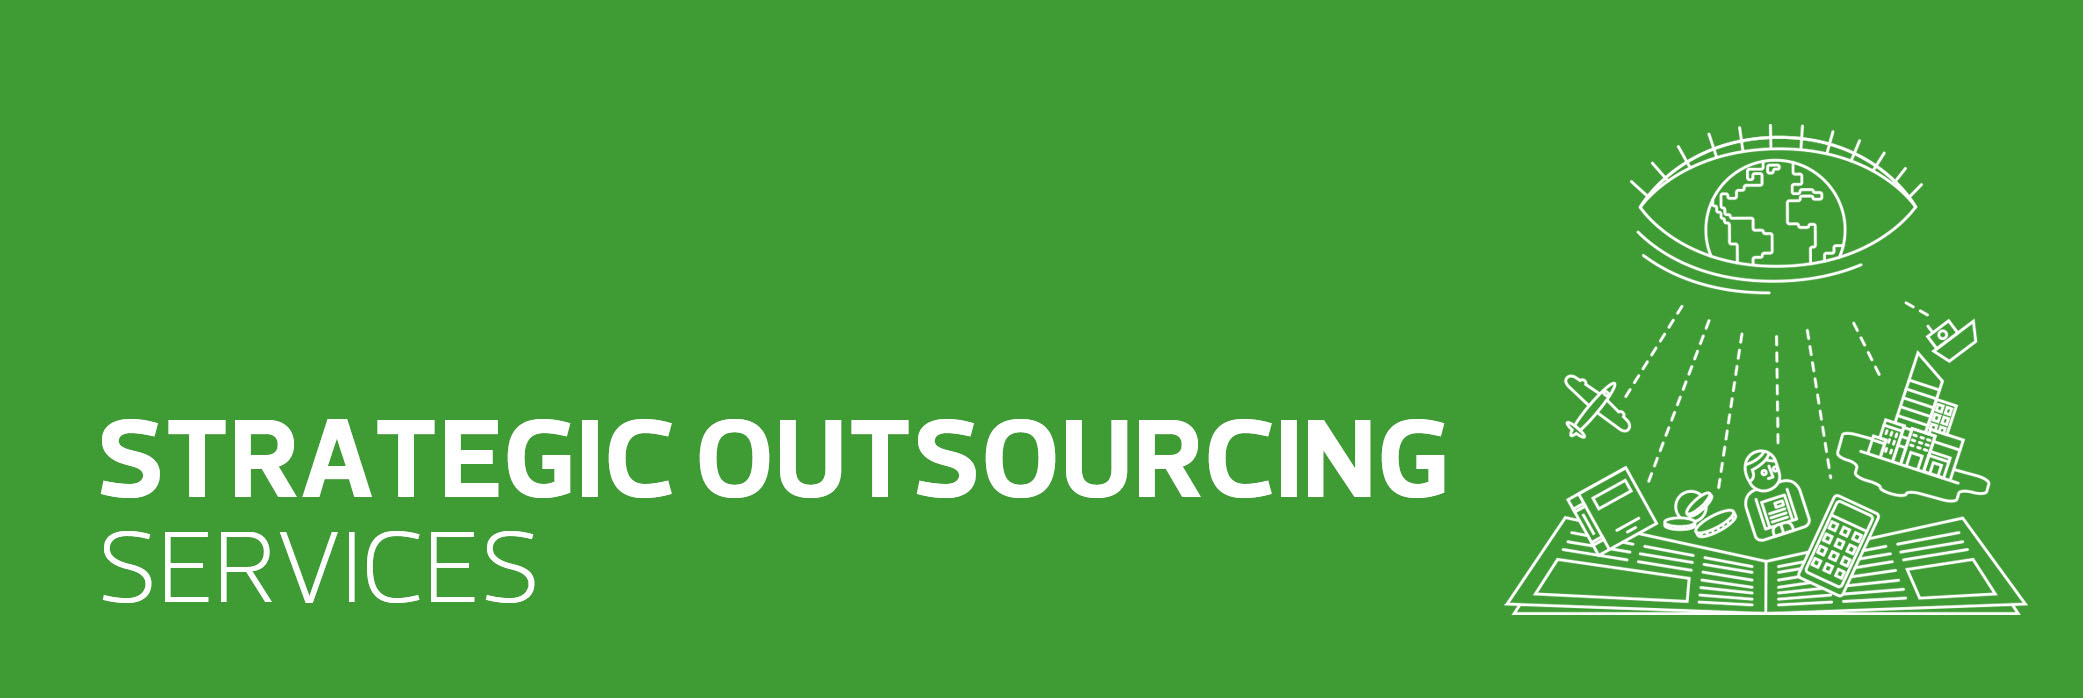 Strategic Outsourcing solutions for SME businesses